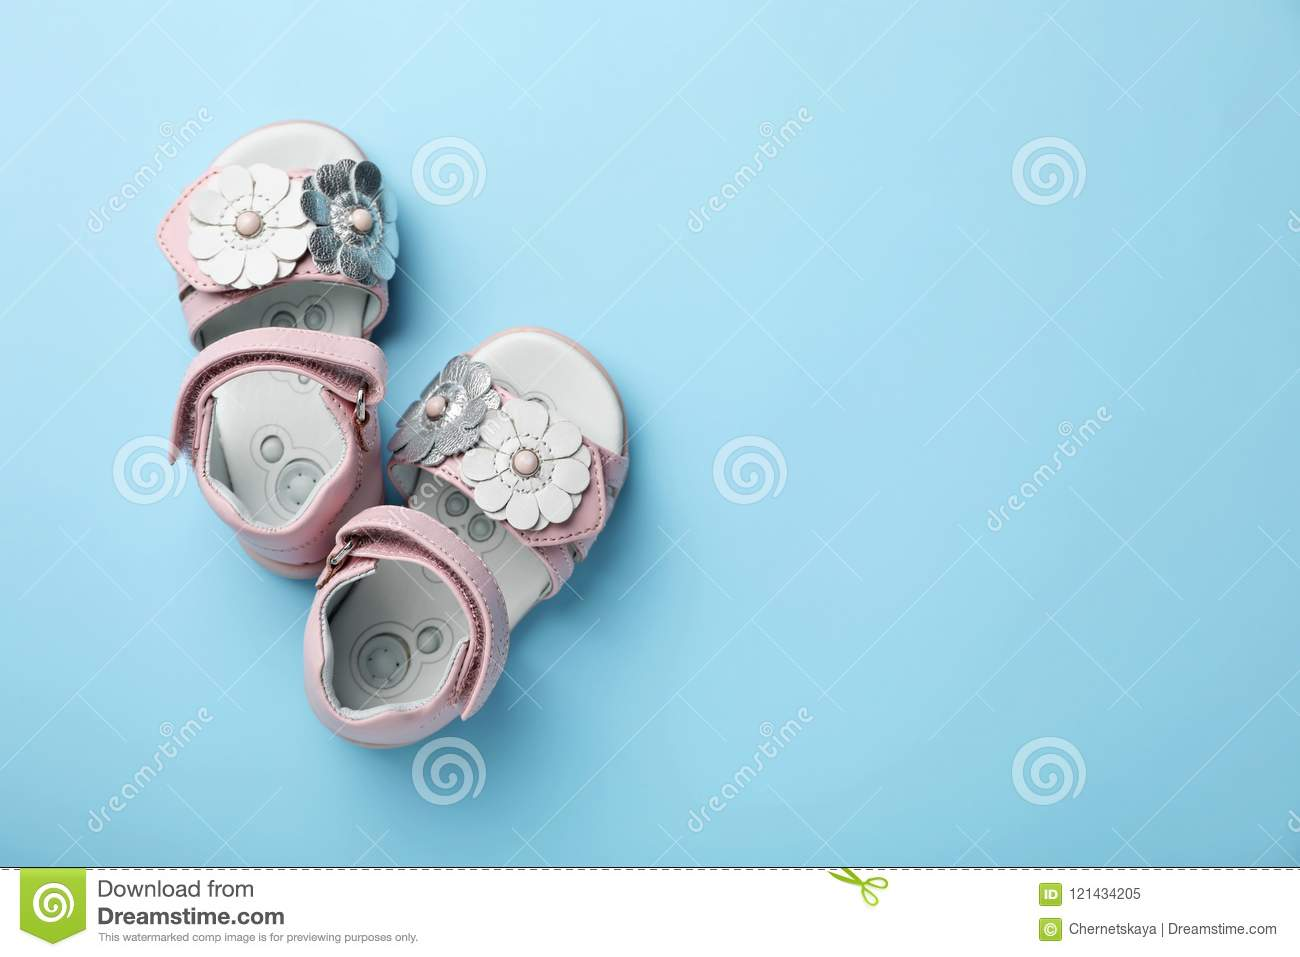 e6bba187c66f63 Pair Of Cute Baby Sandals On Color Background Stock Image - Image of ...